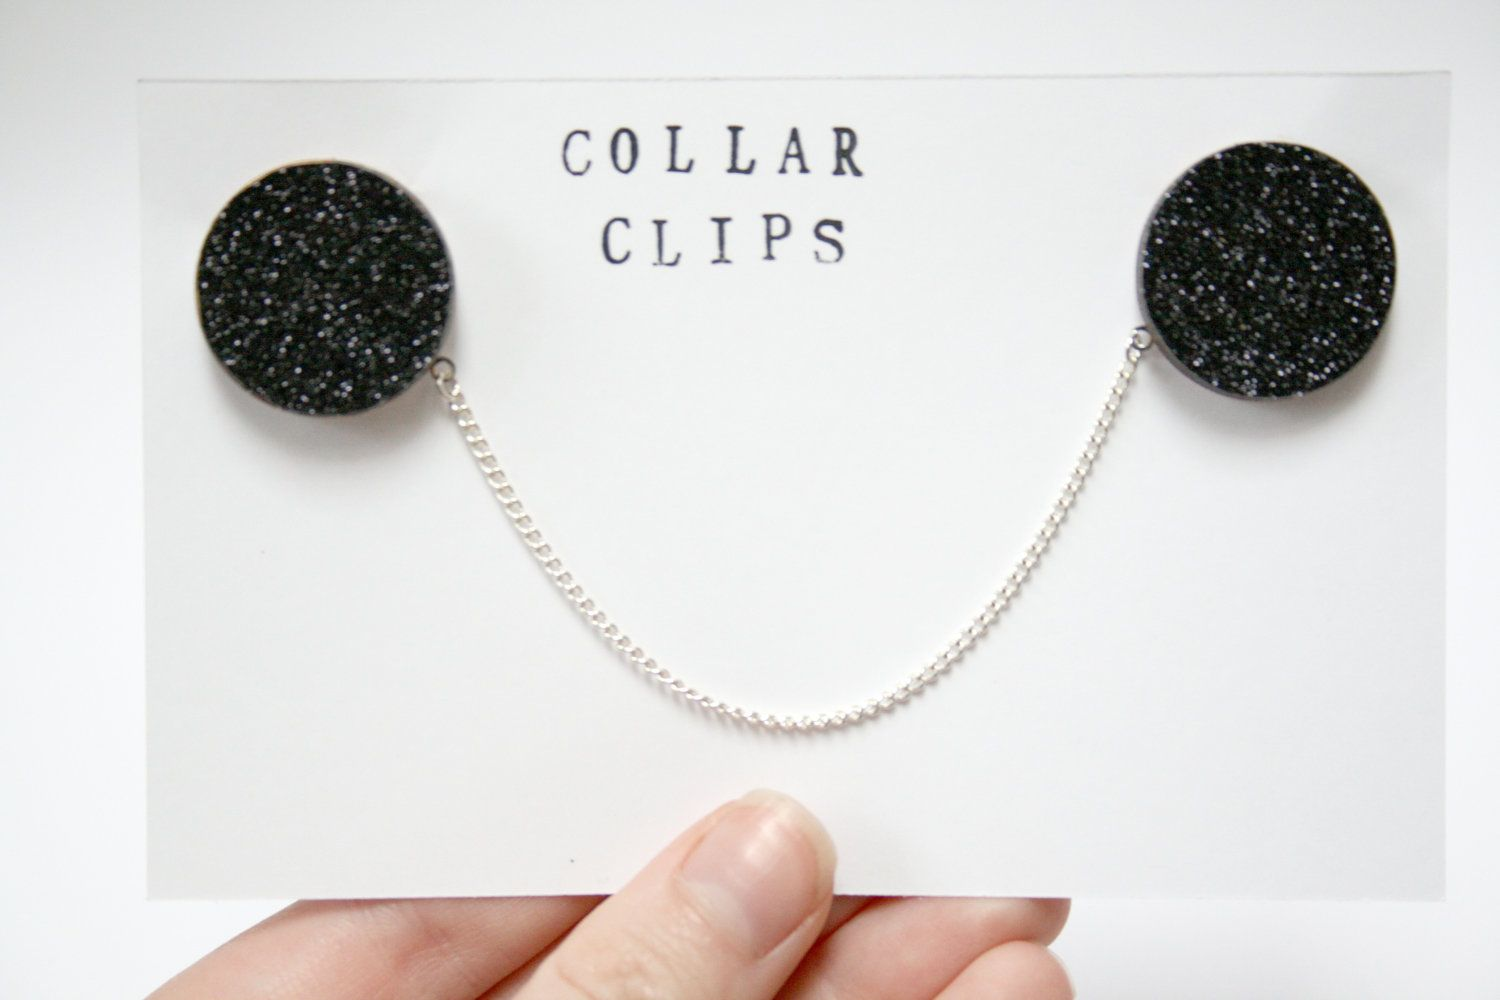 Black Glittered Wooden Collar Clips by ladybirdlikes on Etsy